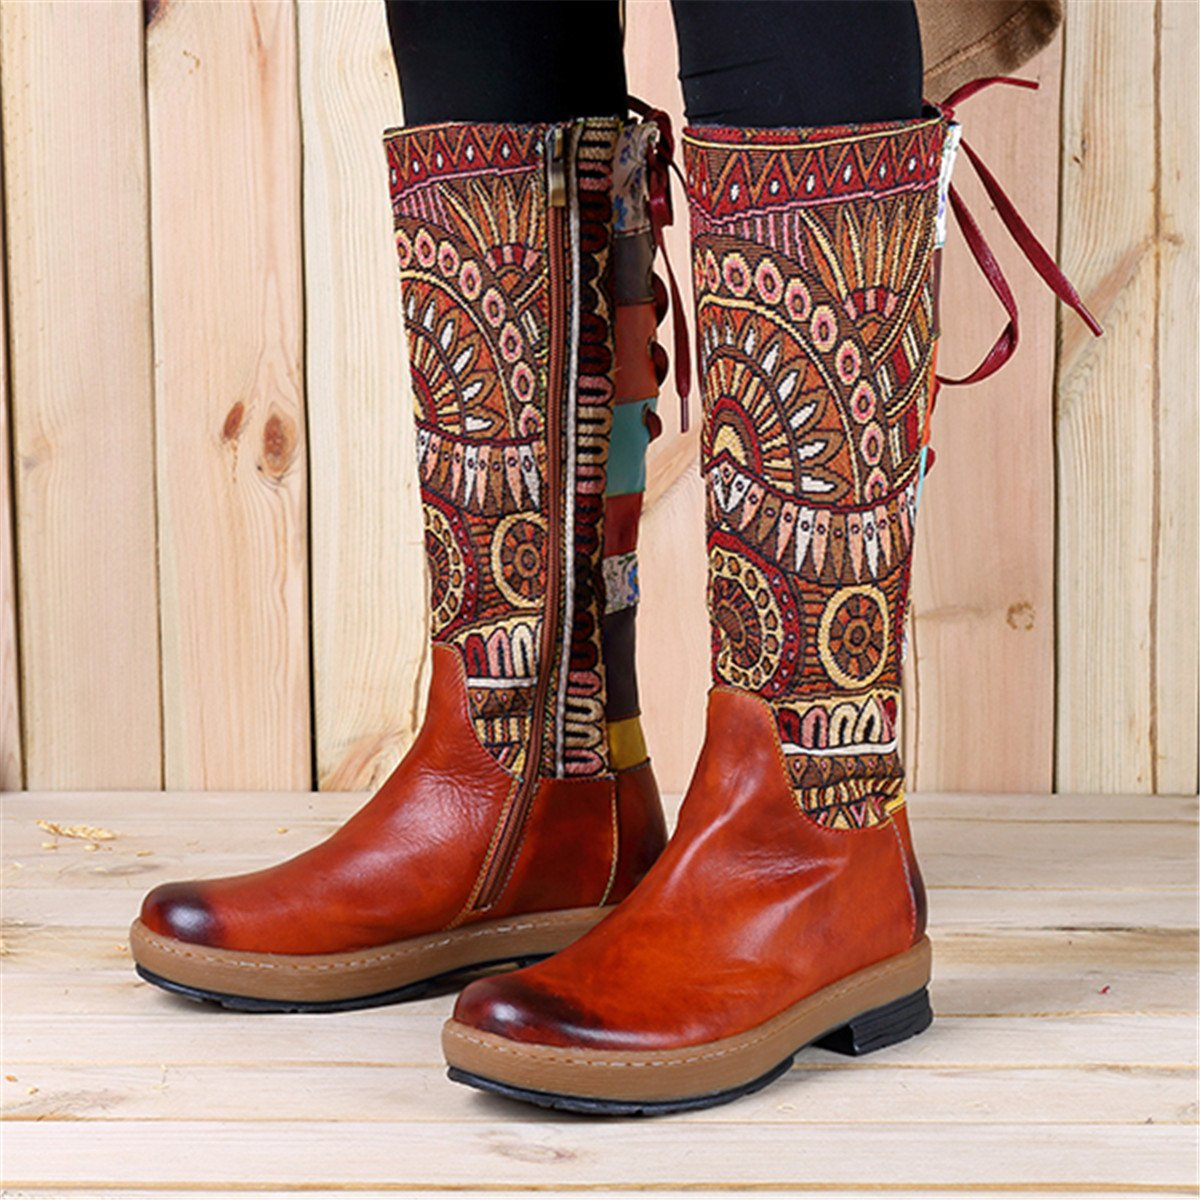 e4759c47d7f5b Socofy Leather Knee Boots Womens Knee-High Ankle Riding Boots Ladies Autumn  Winter Warm Over Knee High Boots Zip Low Flat Heel Long Boots Bohemian ...